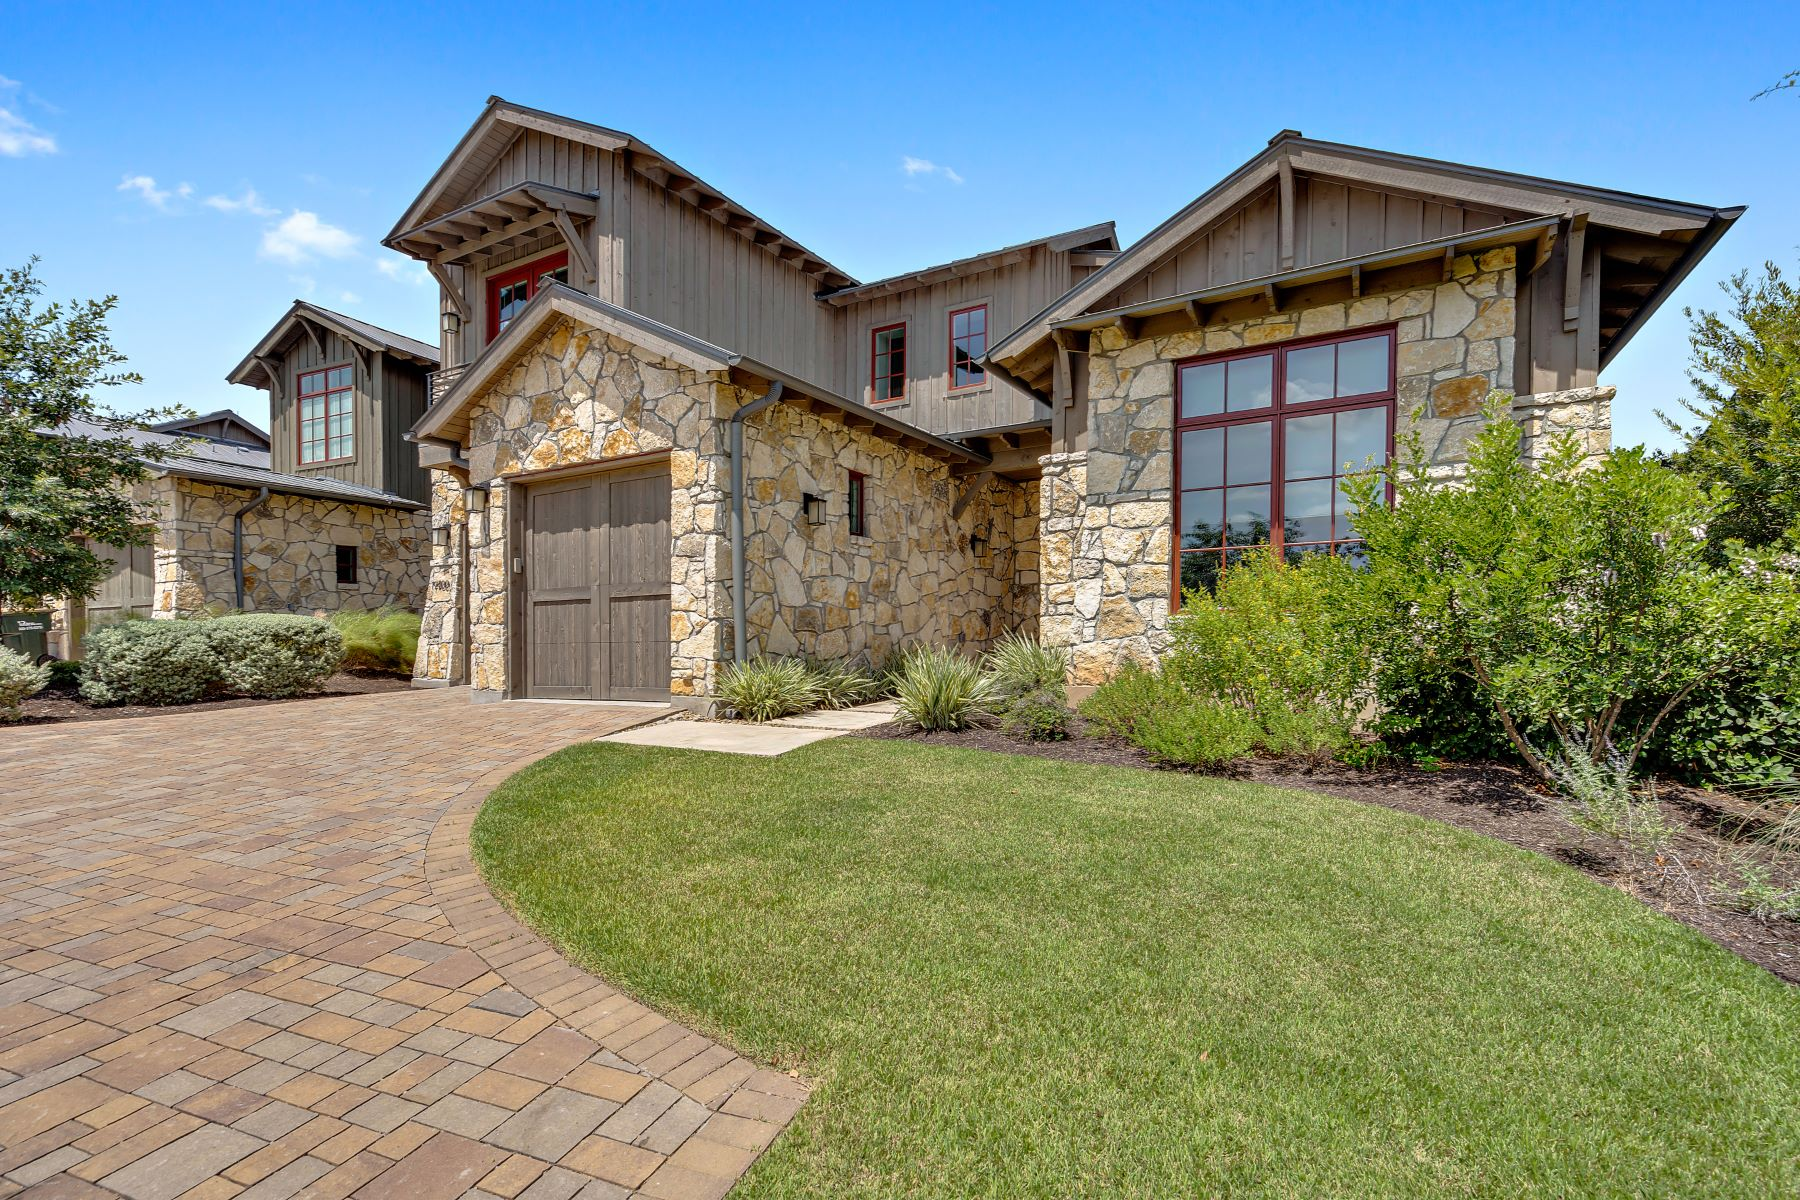 Condominiums for Sale at 19400 Tabasco Cat Trail, Spicewood, TX 78669 19400 Tabasco Cat Trail Spicewood, Texas 78669 United States